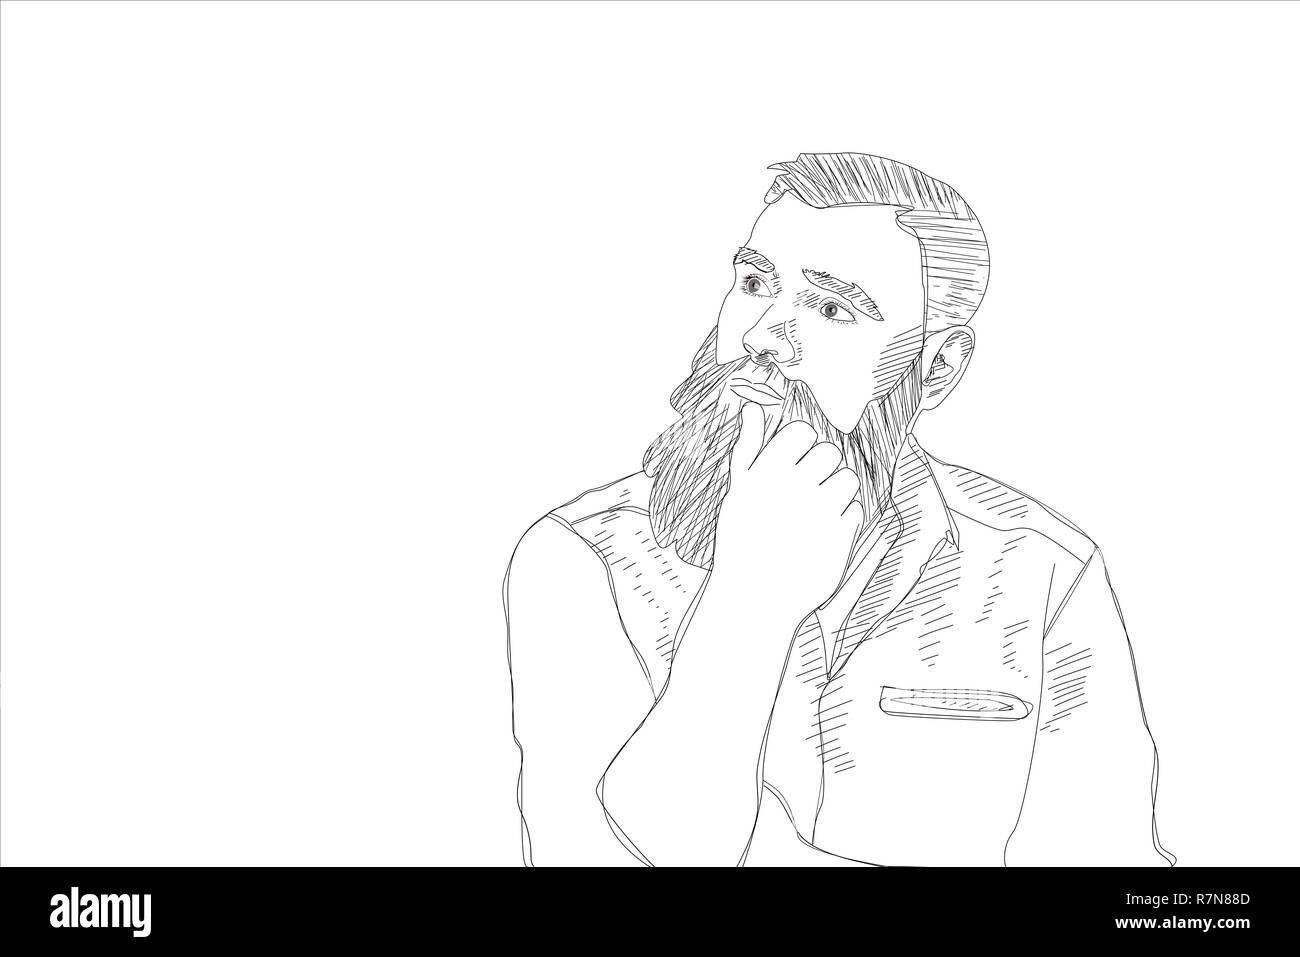 Artistic pencil sketch of a thoughtful bearded man sitting with his hand to his lips looking